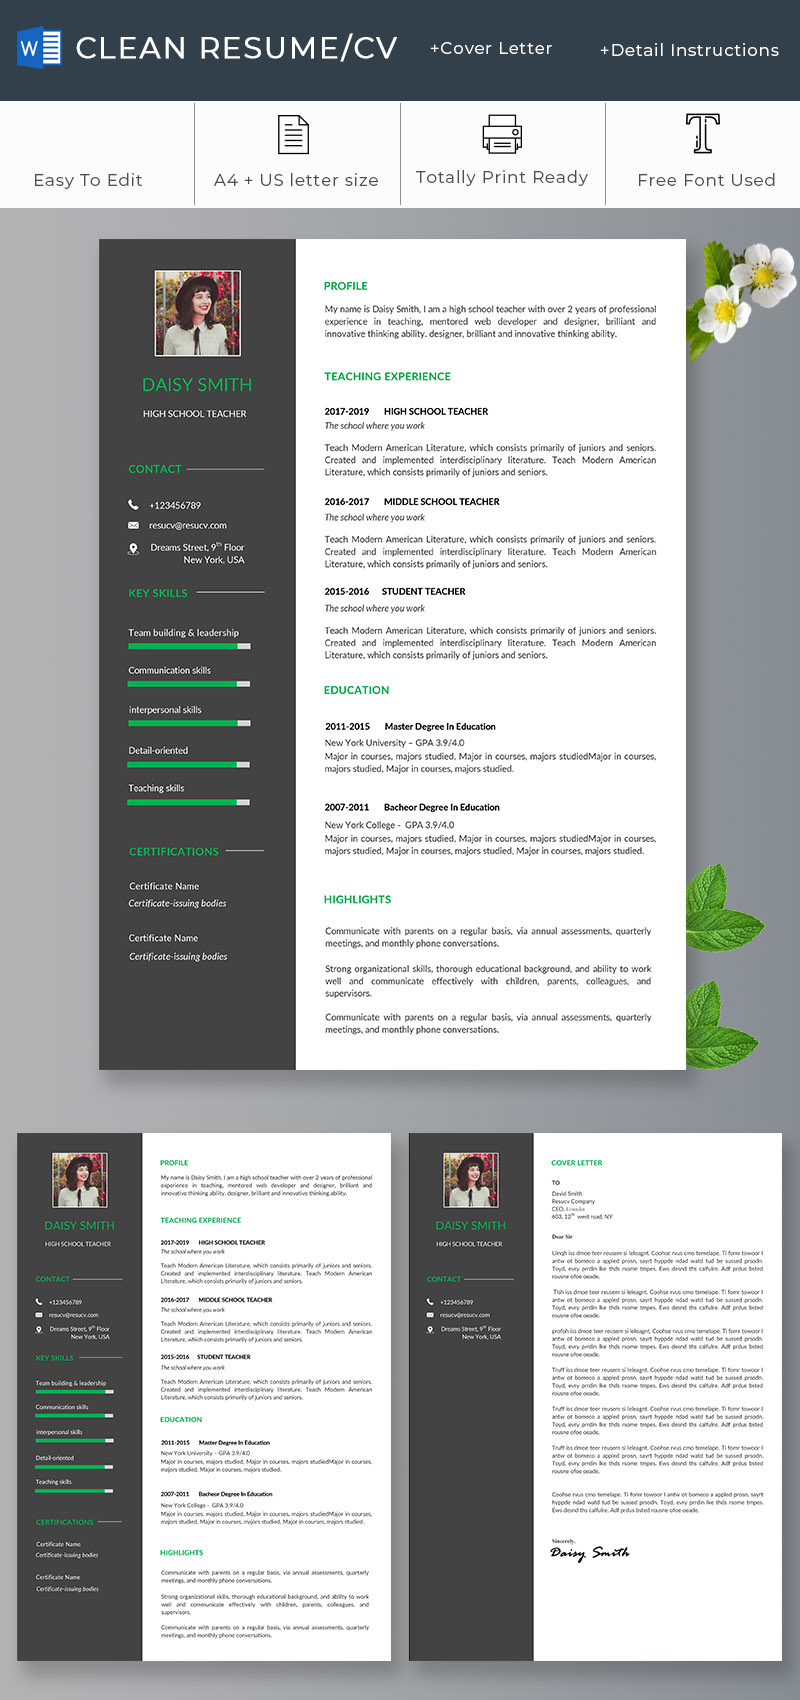 Clean school teacher resume/cv template